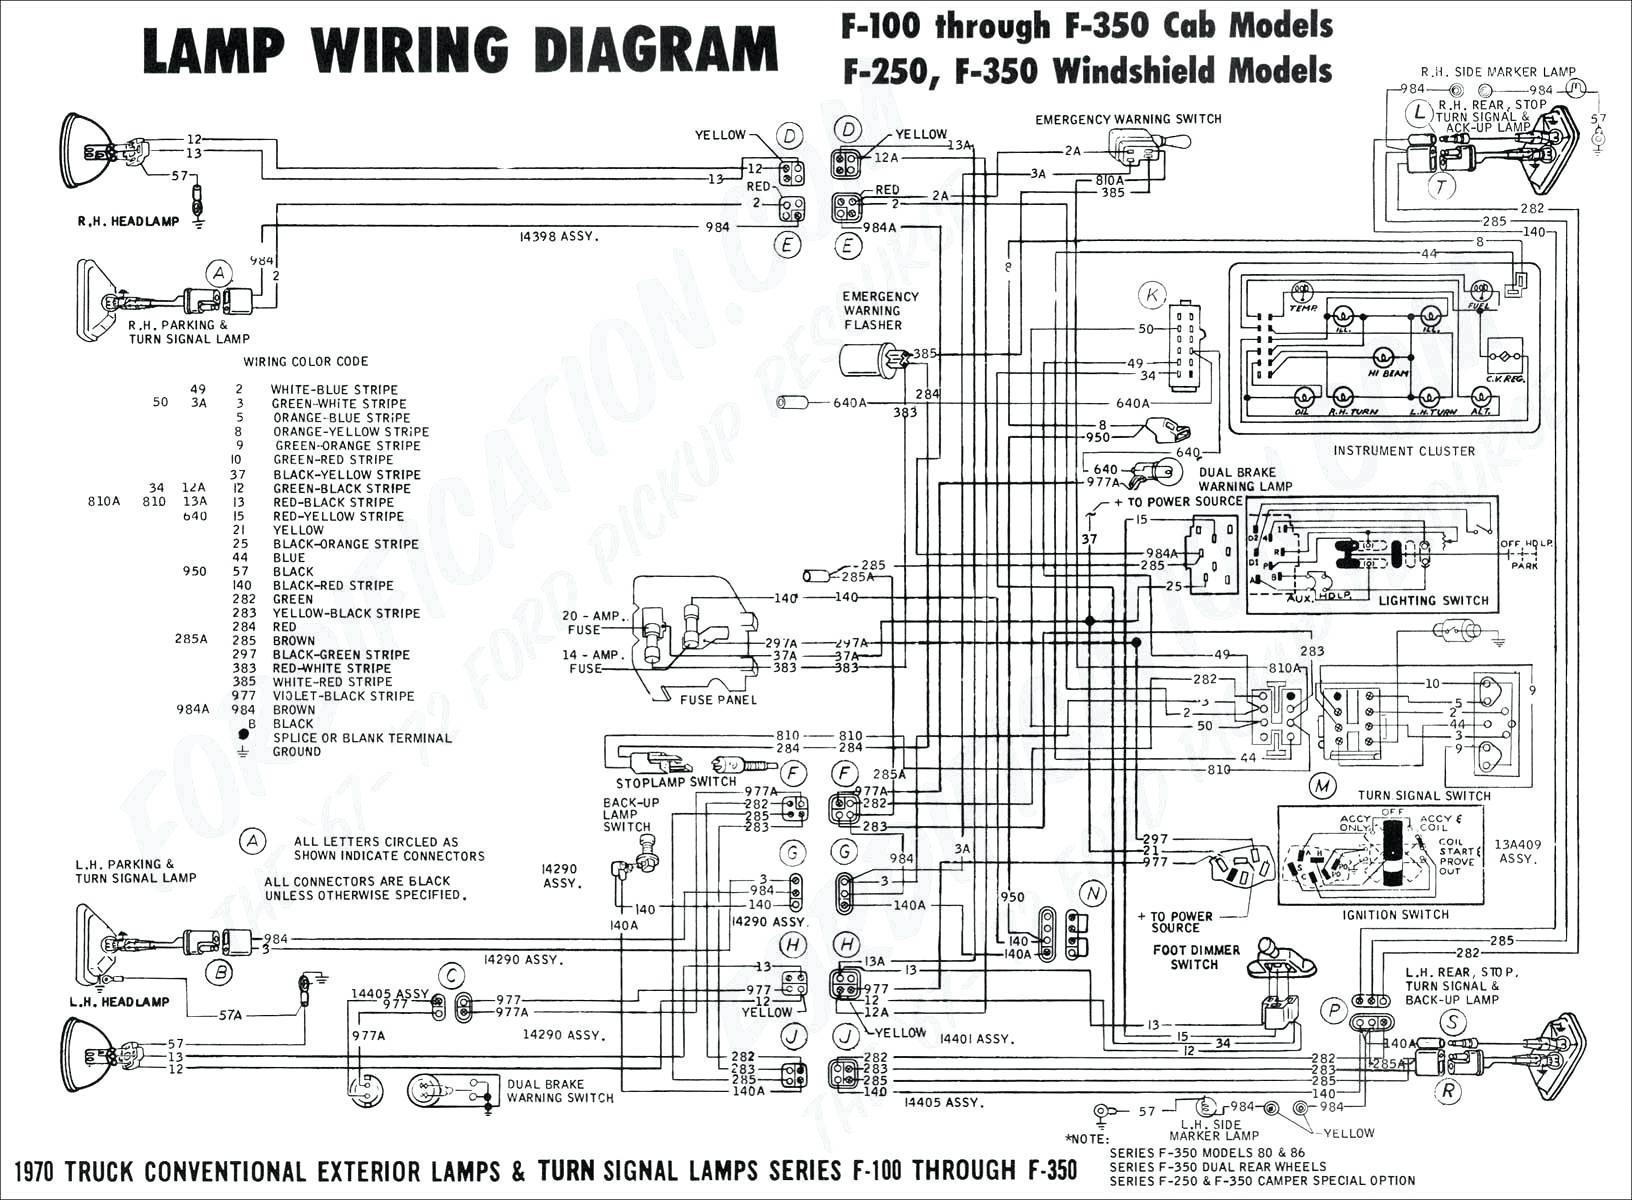 2007 Hyundai Santa Fe Engine Diagram Sensor Wiring Diagram 2008 F250 Worksheet and Wiring Diagram • Of 2007 Hyundai Santa Fe Engine Diagram Wiring Diagram for 2005 Hyundai Santa Fe 3 5 Schematics Wiring